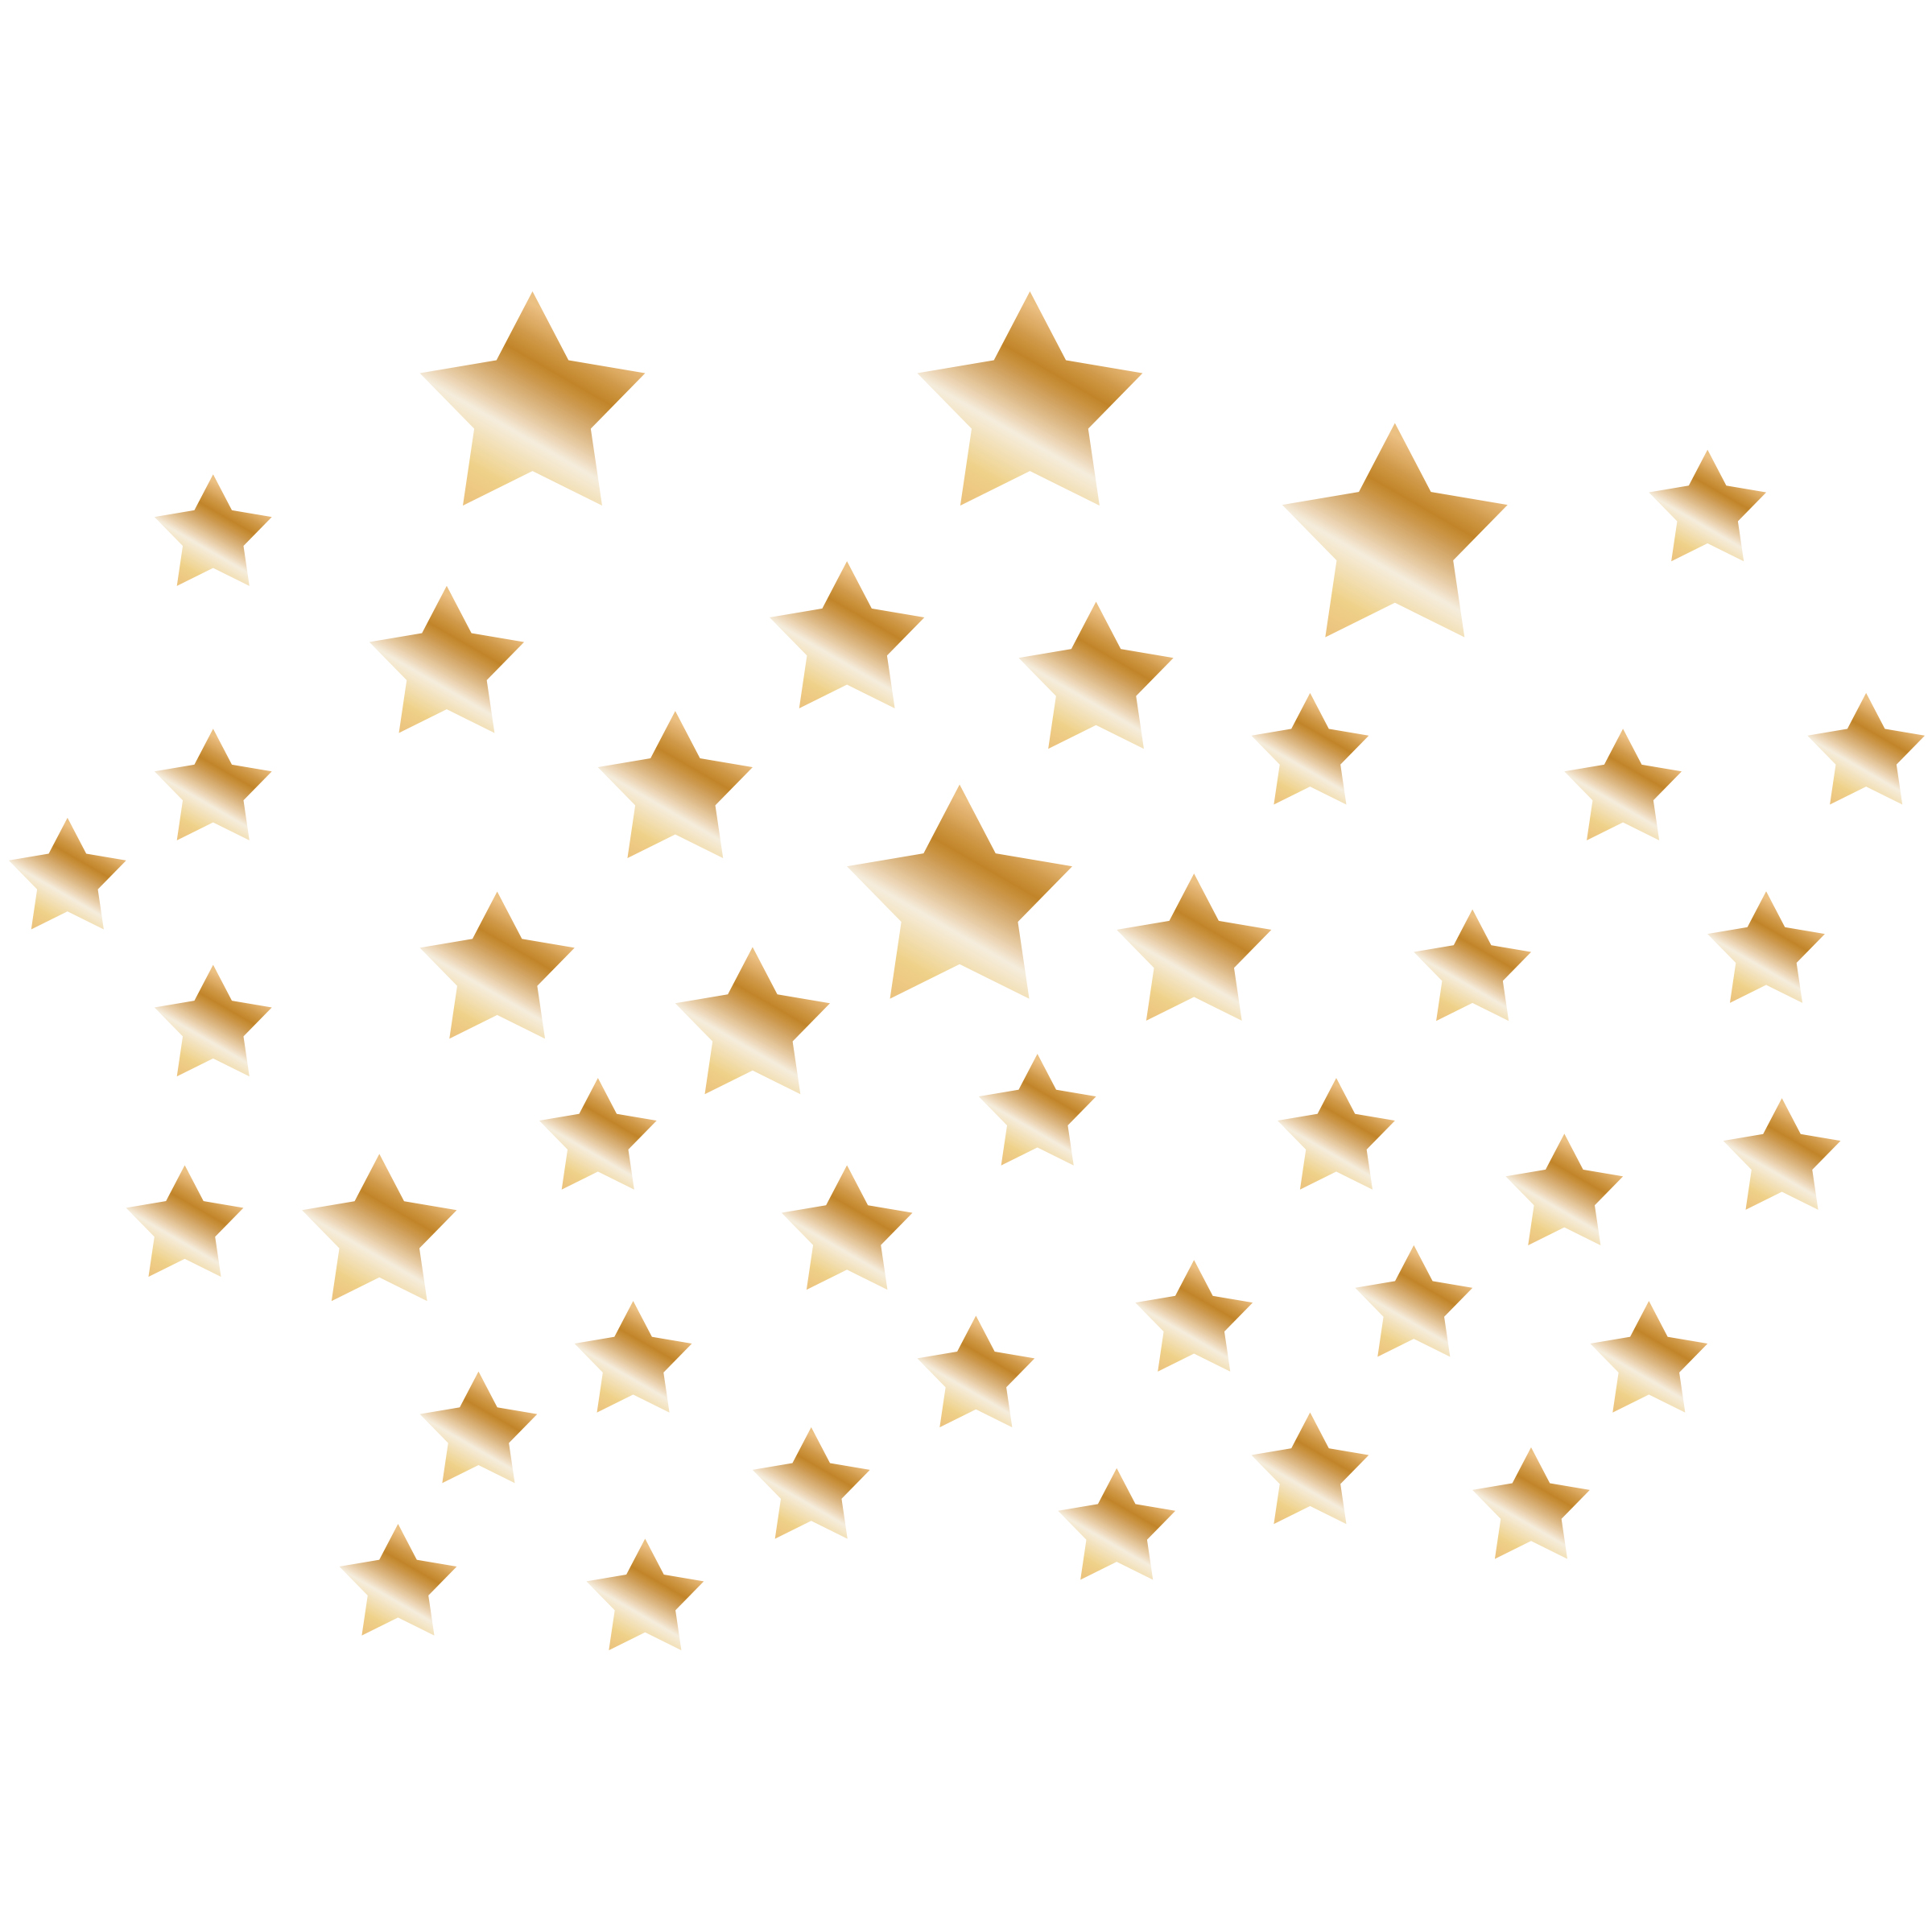 Home Peel And Stick Vinyl Wall Art Gold StarsDCWV Home Peel And Stick 2400x2400